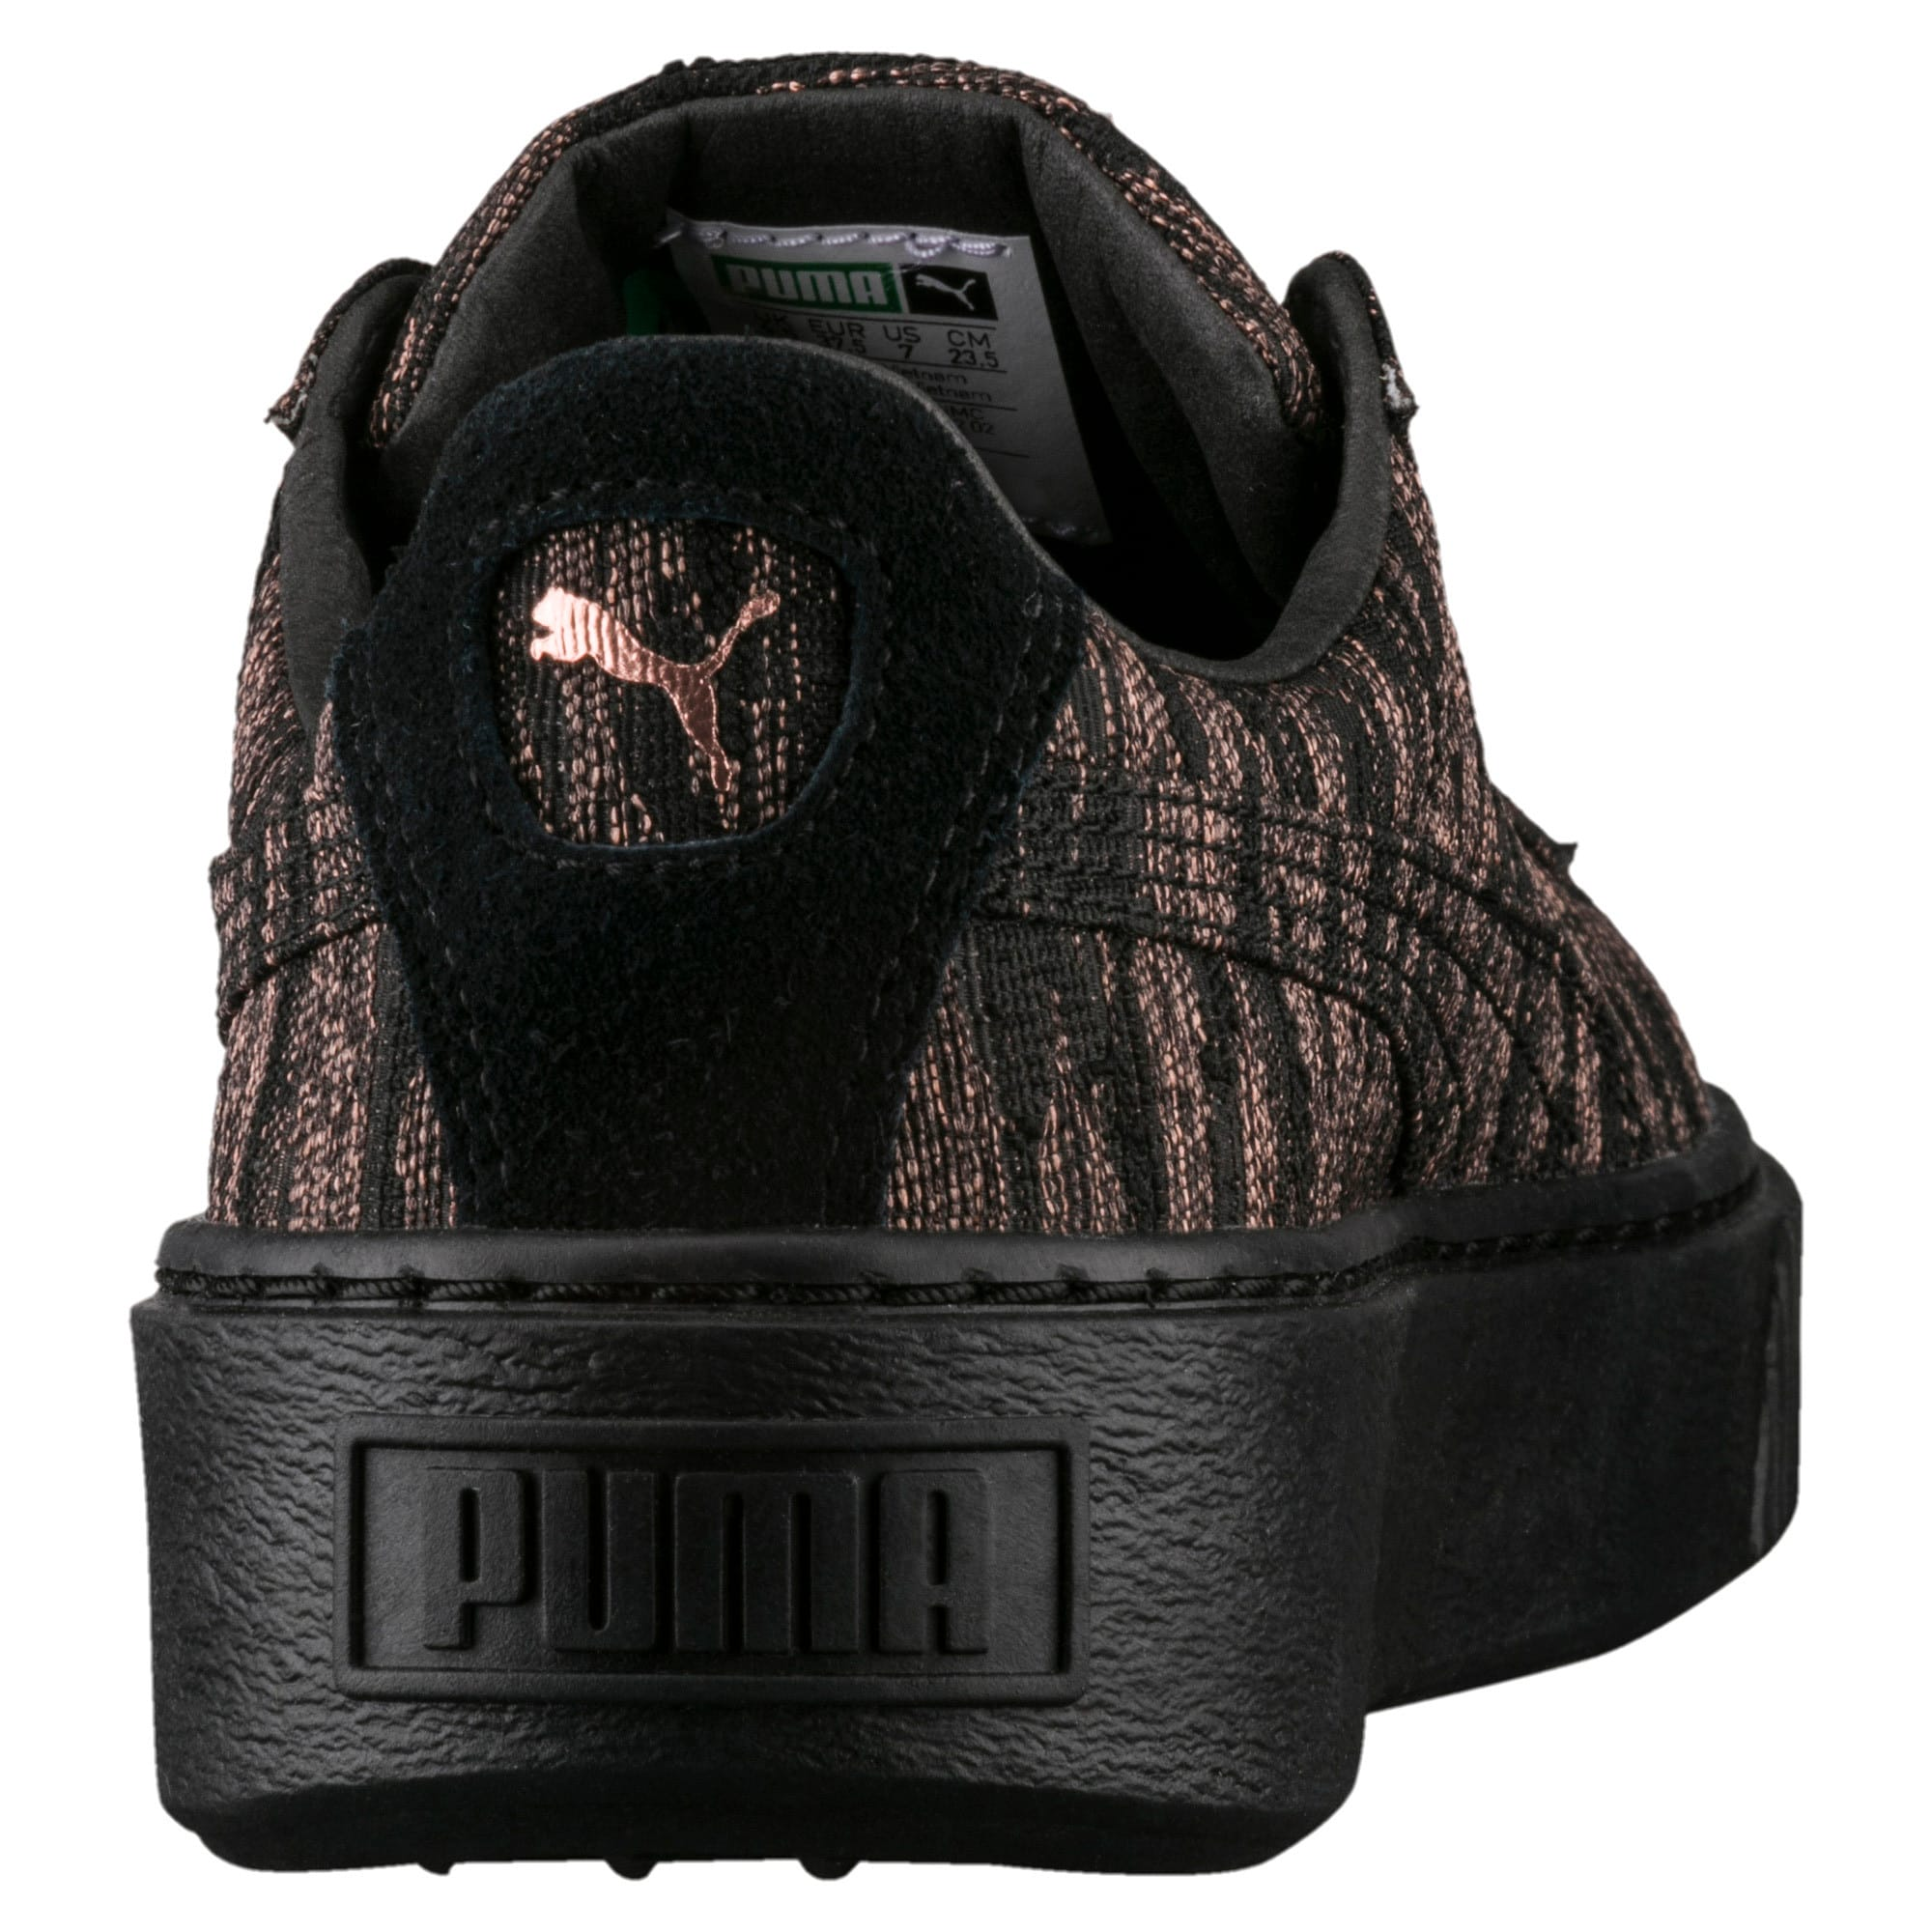 Thumbnail 3 of Basket Platform Velvet Rope Women's Trainers, Puma Black-Puma Black, medium-IND